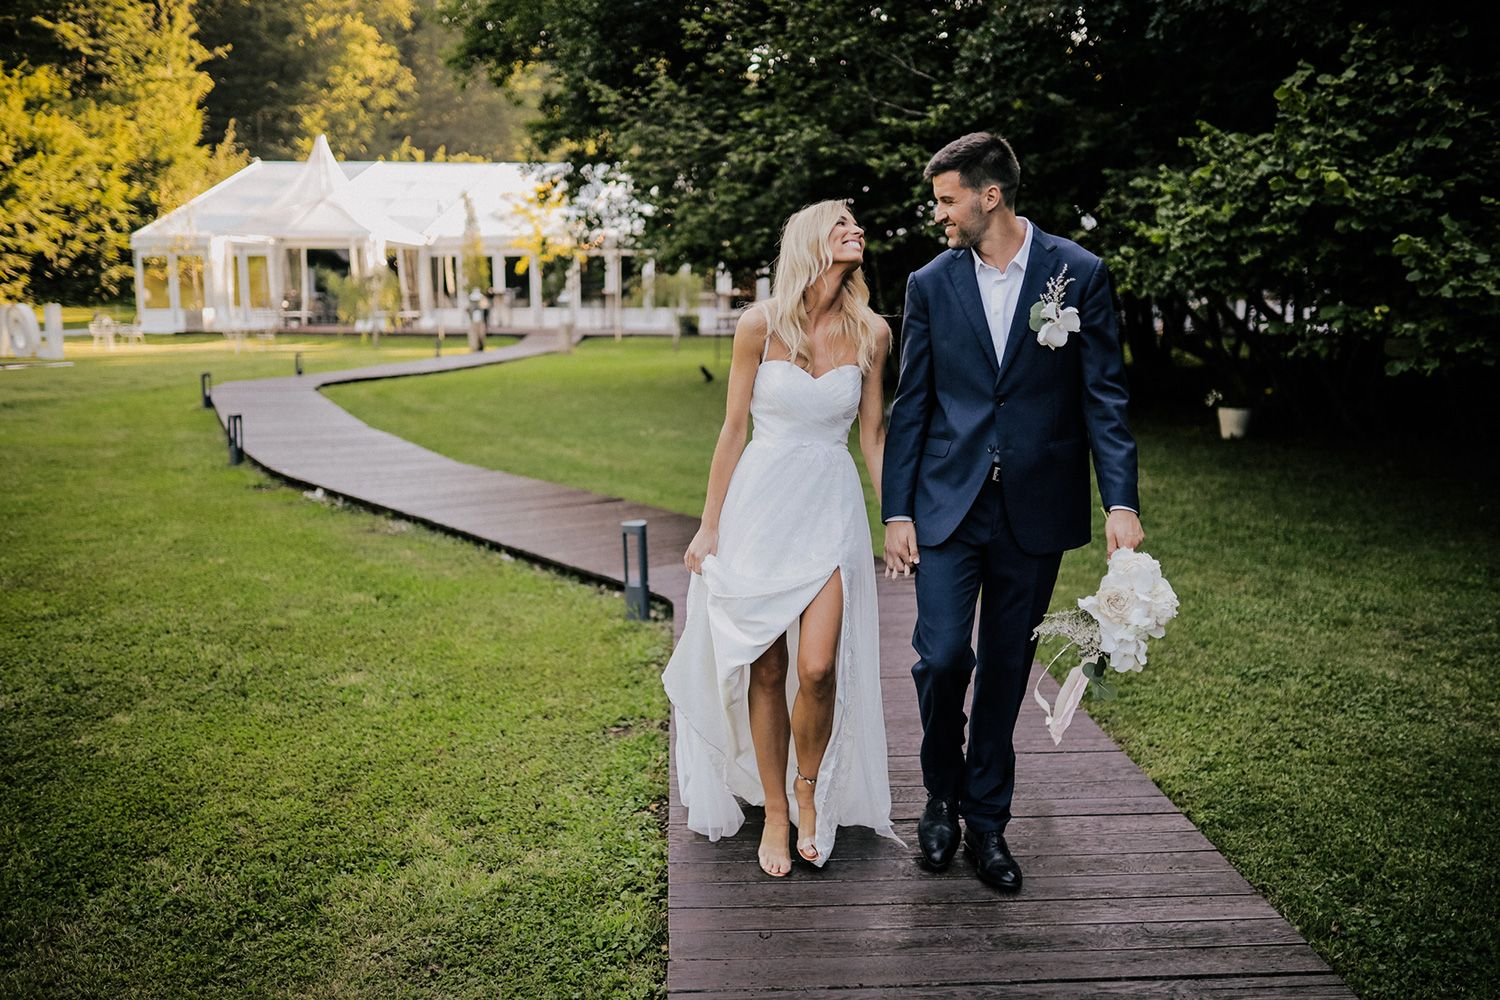 Wedding Resort Corbeon Zagreb - vjenčanja na otvorenom